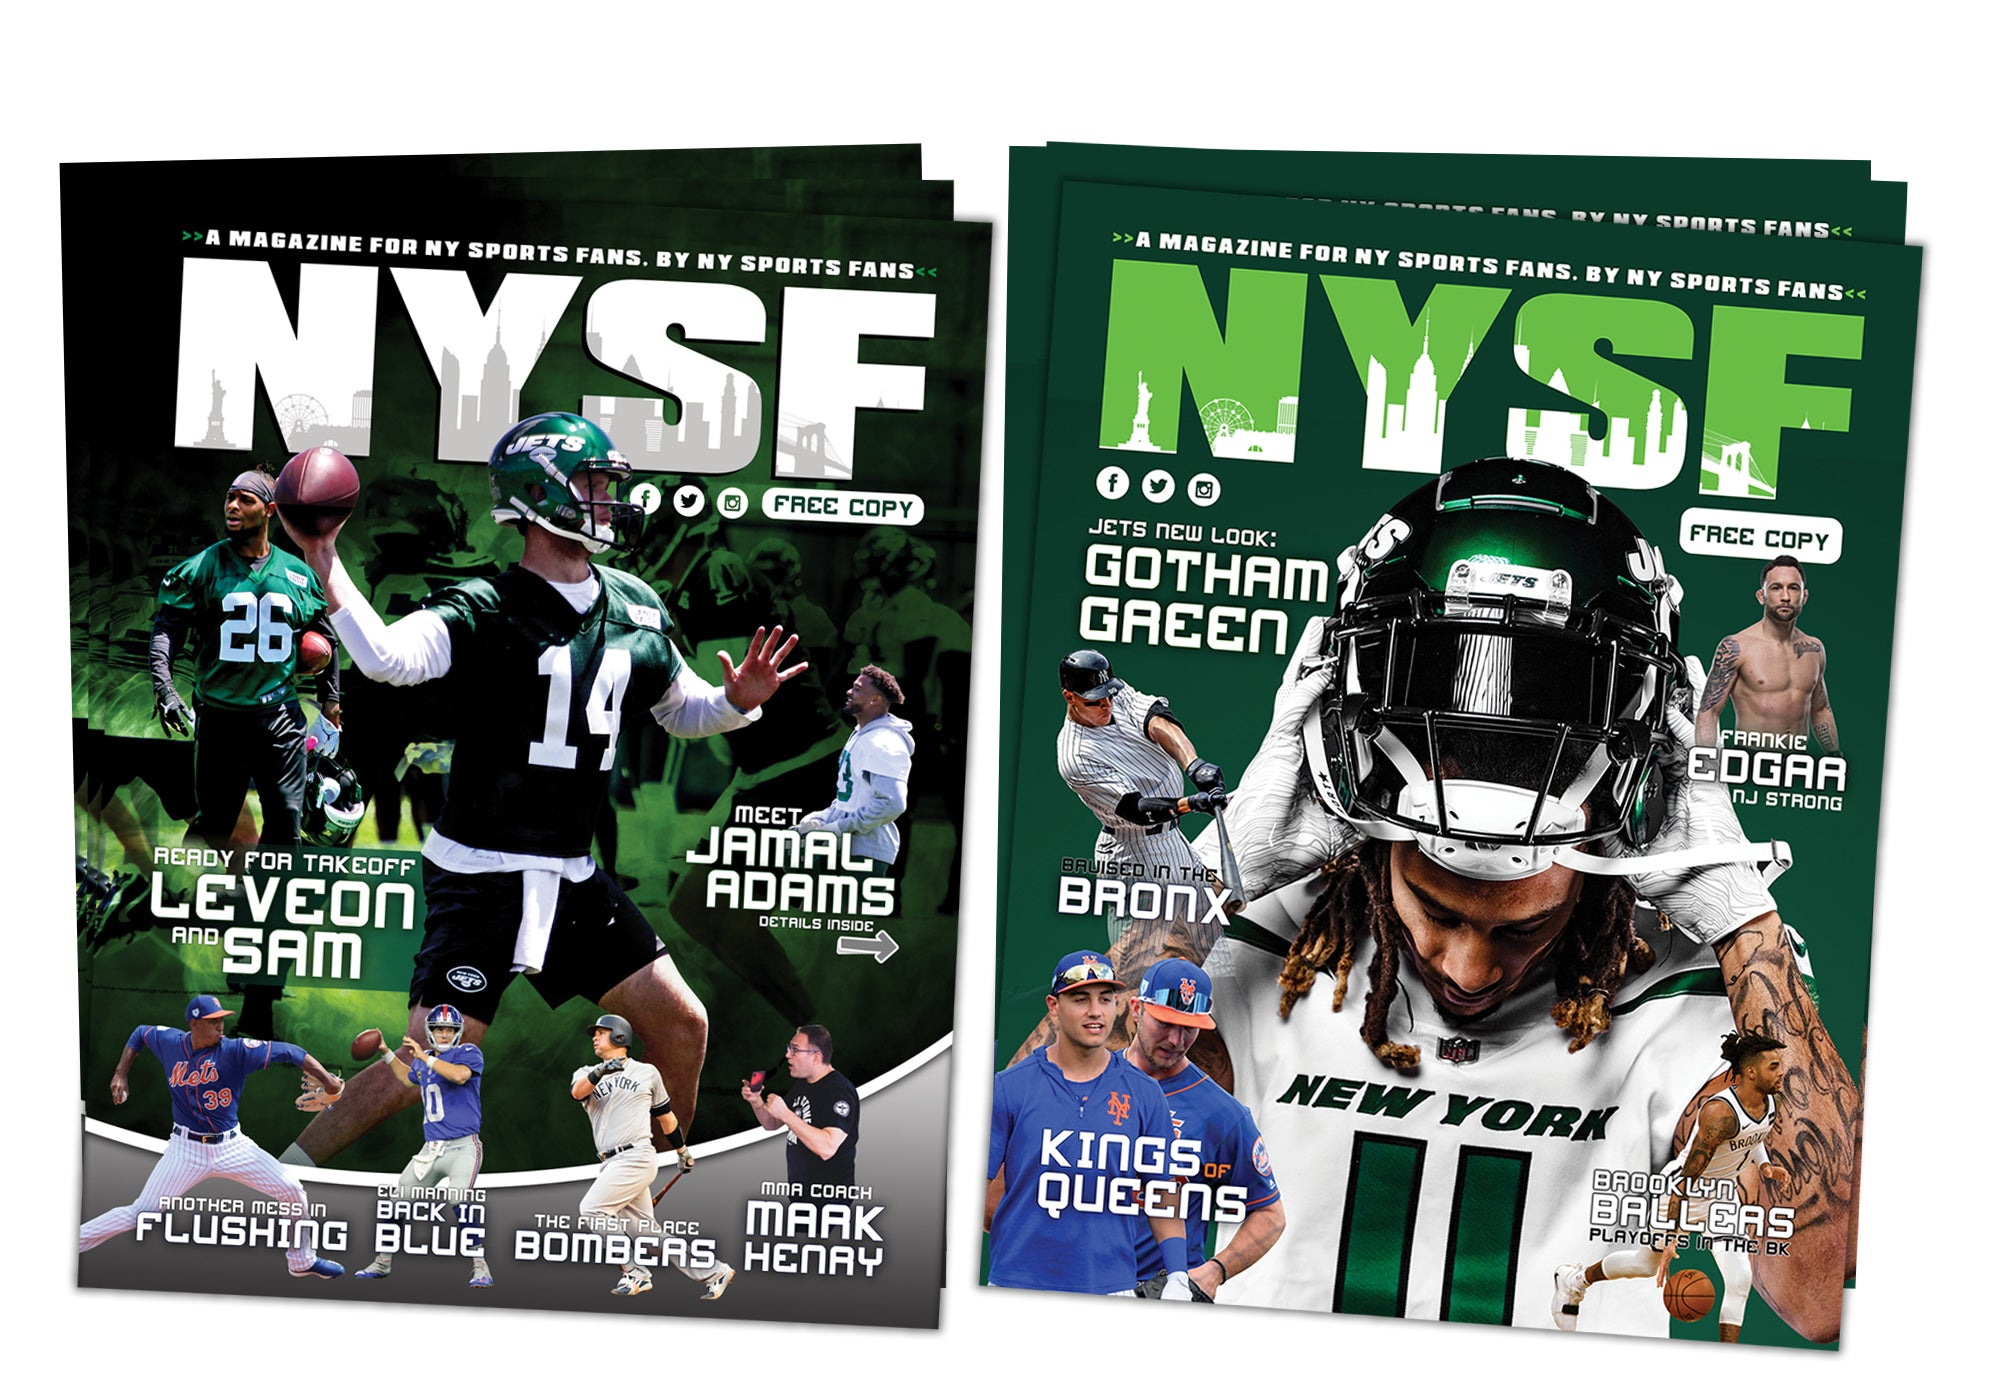 NYSF Magazine - 1 Year Subscription